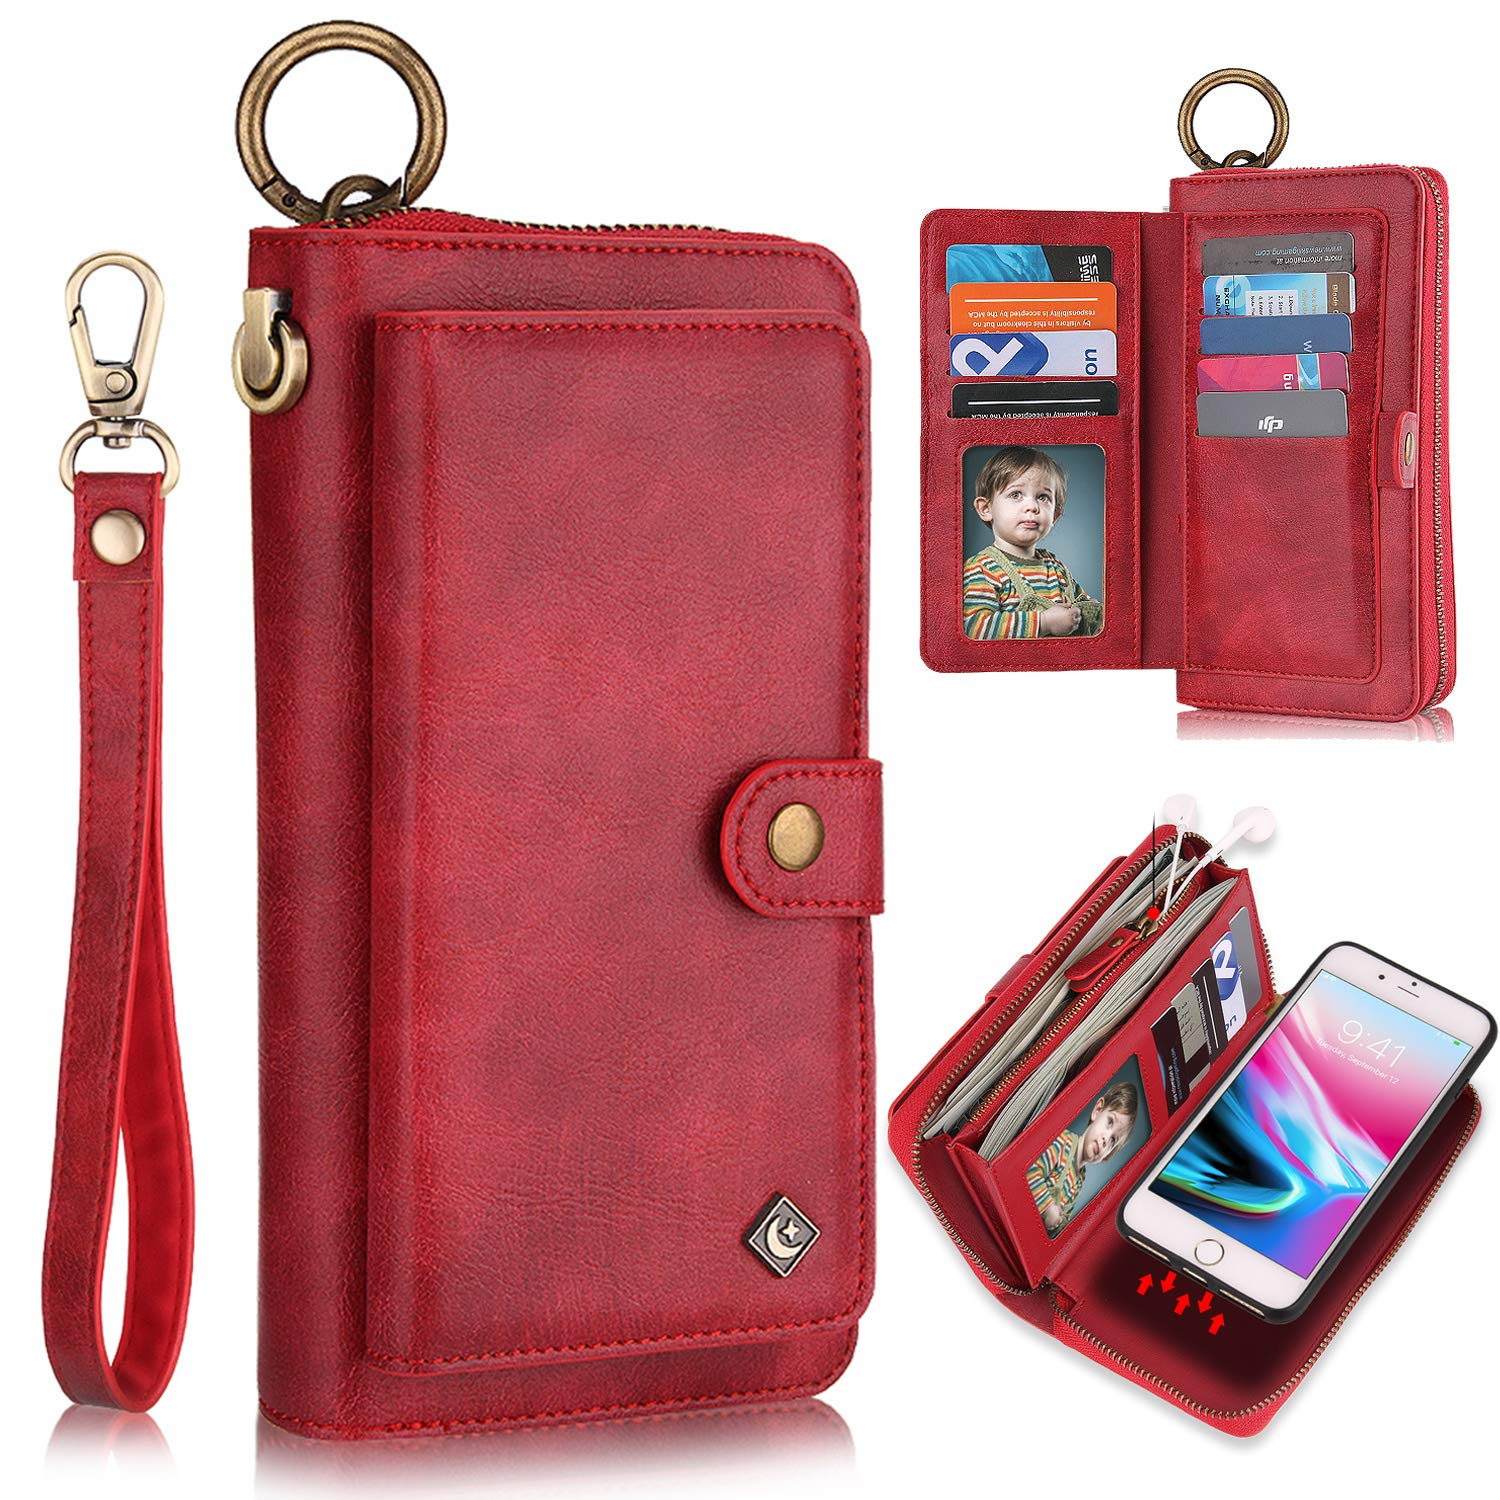 XRPow Wallet Case iPhone 8 Plus/iPhone 7 Plus 5.5'' [2 in 1] Magnetic Detachable Wallet Case [Vegan Leather] Zipper Clutch Folio Flip Card Solt [Wrist Strap] Purse Protection Back Cover - Red by XRPow